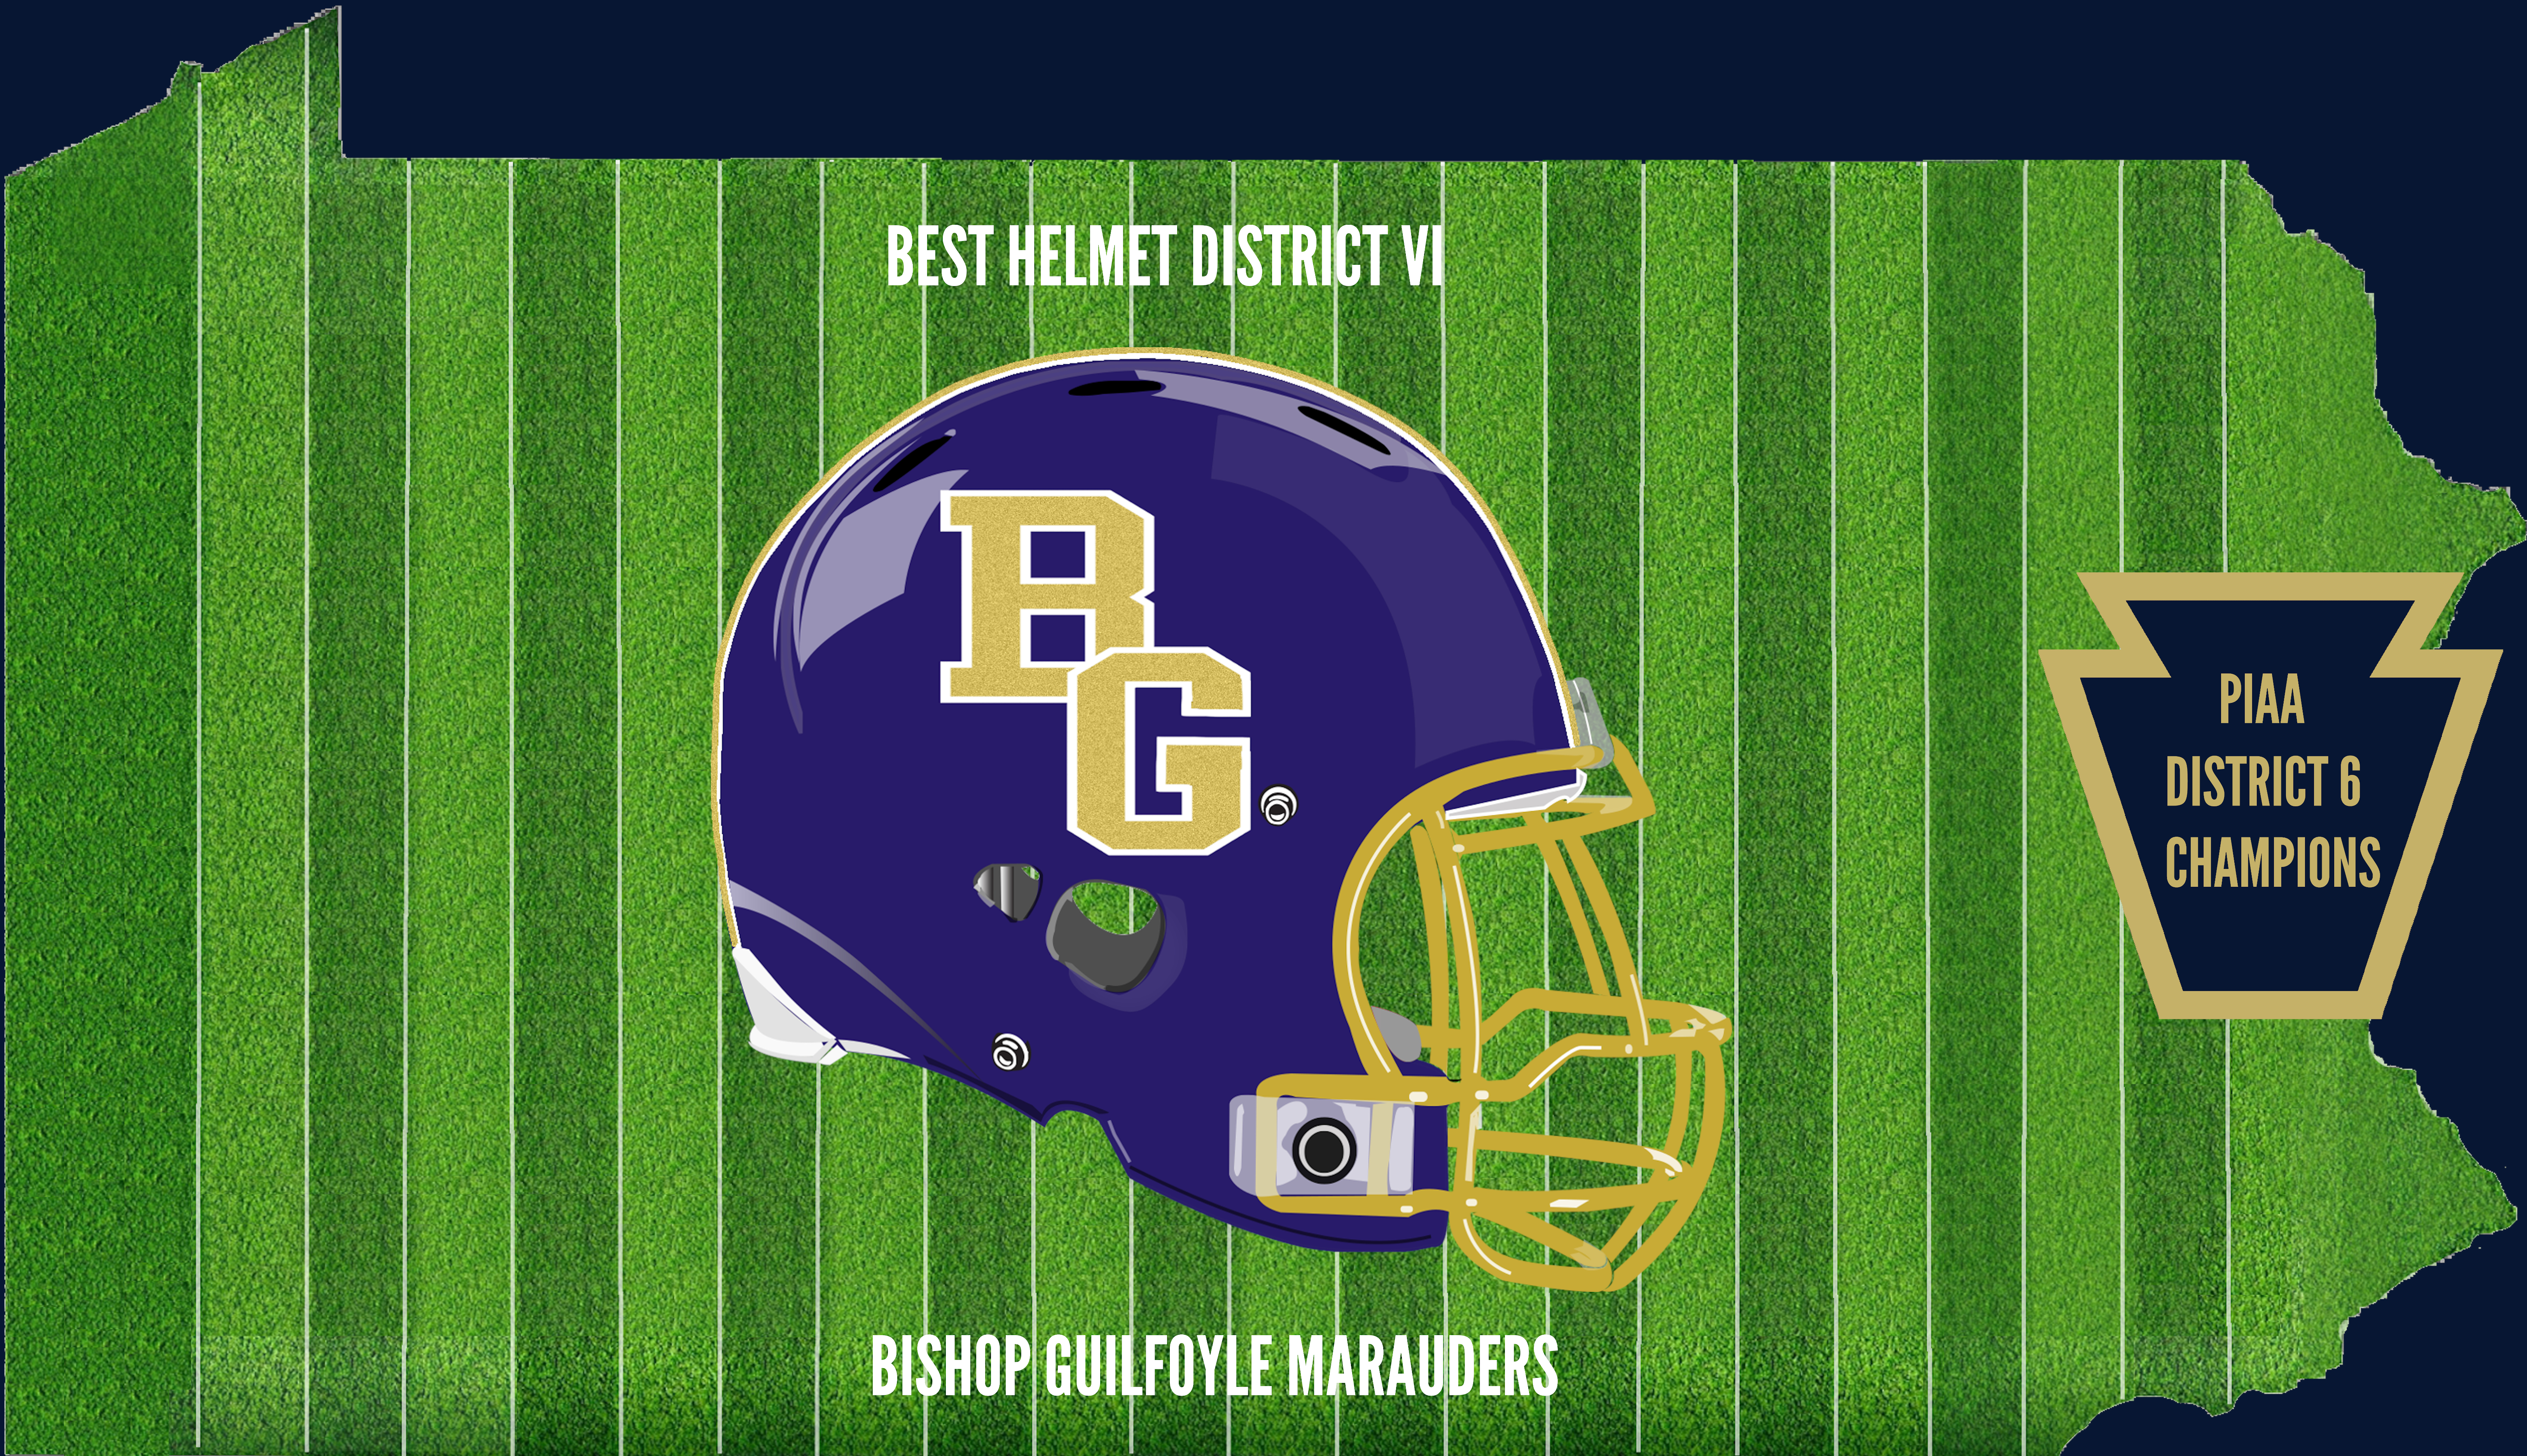 District 6 Champion Helmet